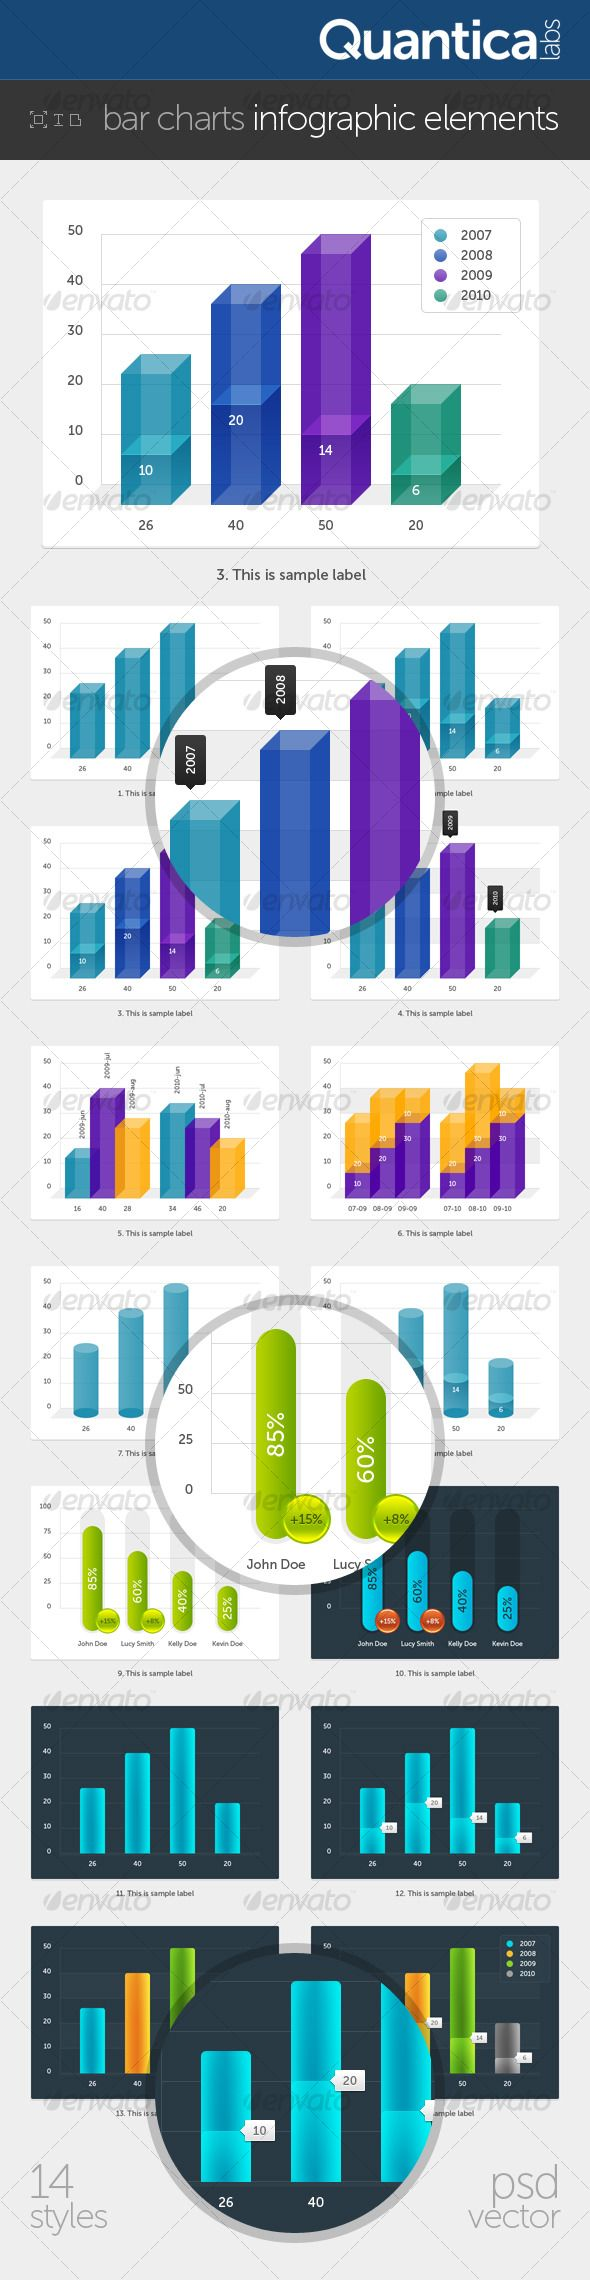 Bar Charts Infographic Elements - Infographics  #infographic #graphic #design #graphicdesign #web #icons #buttons #graph #stats #chart #statistic #pie #barchart #bar